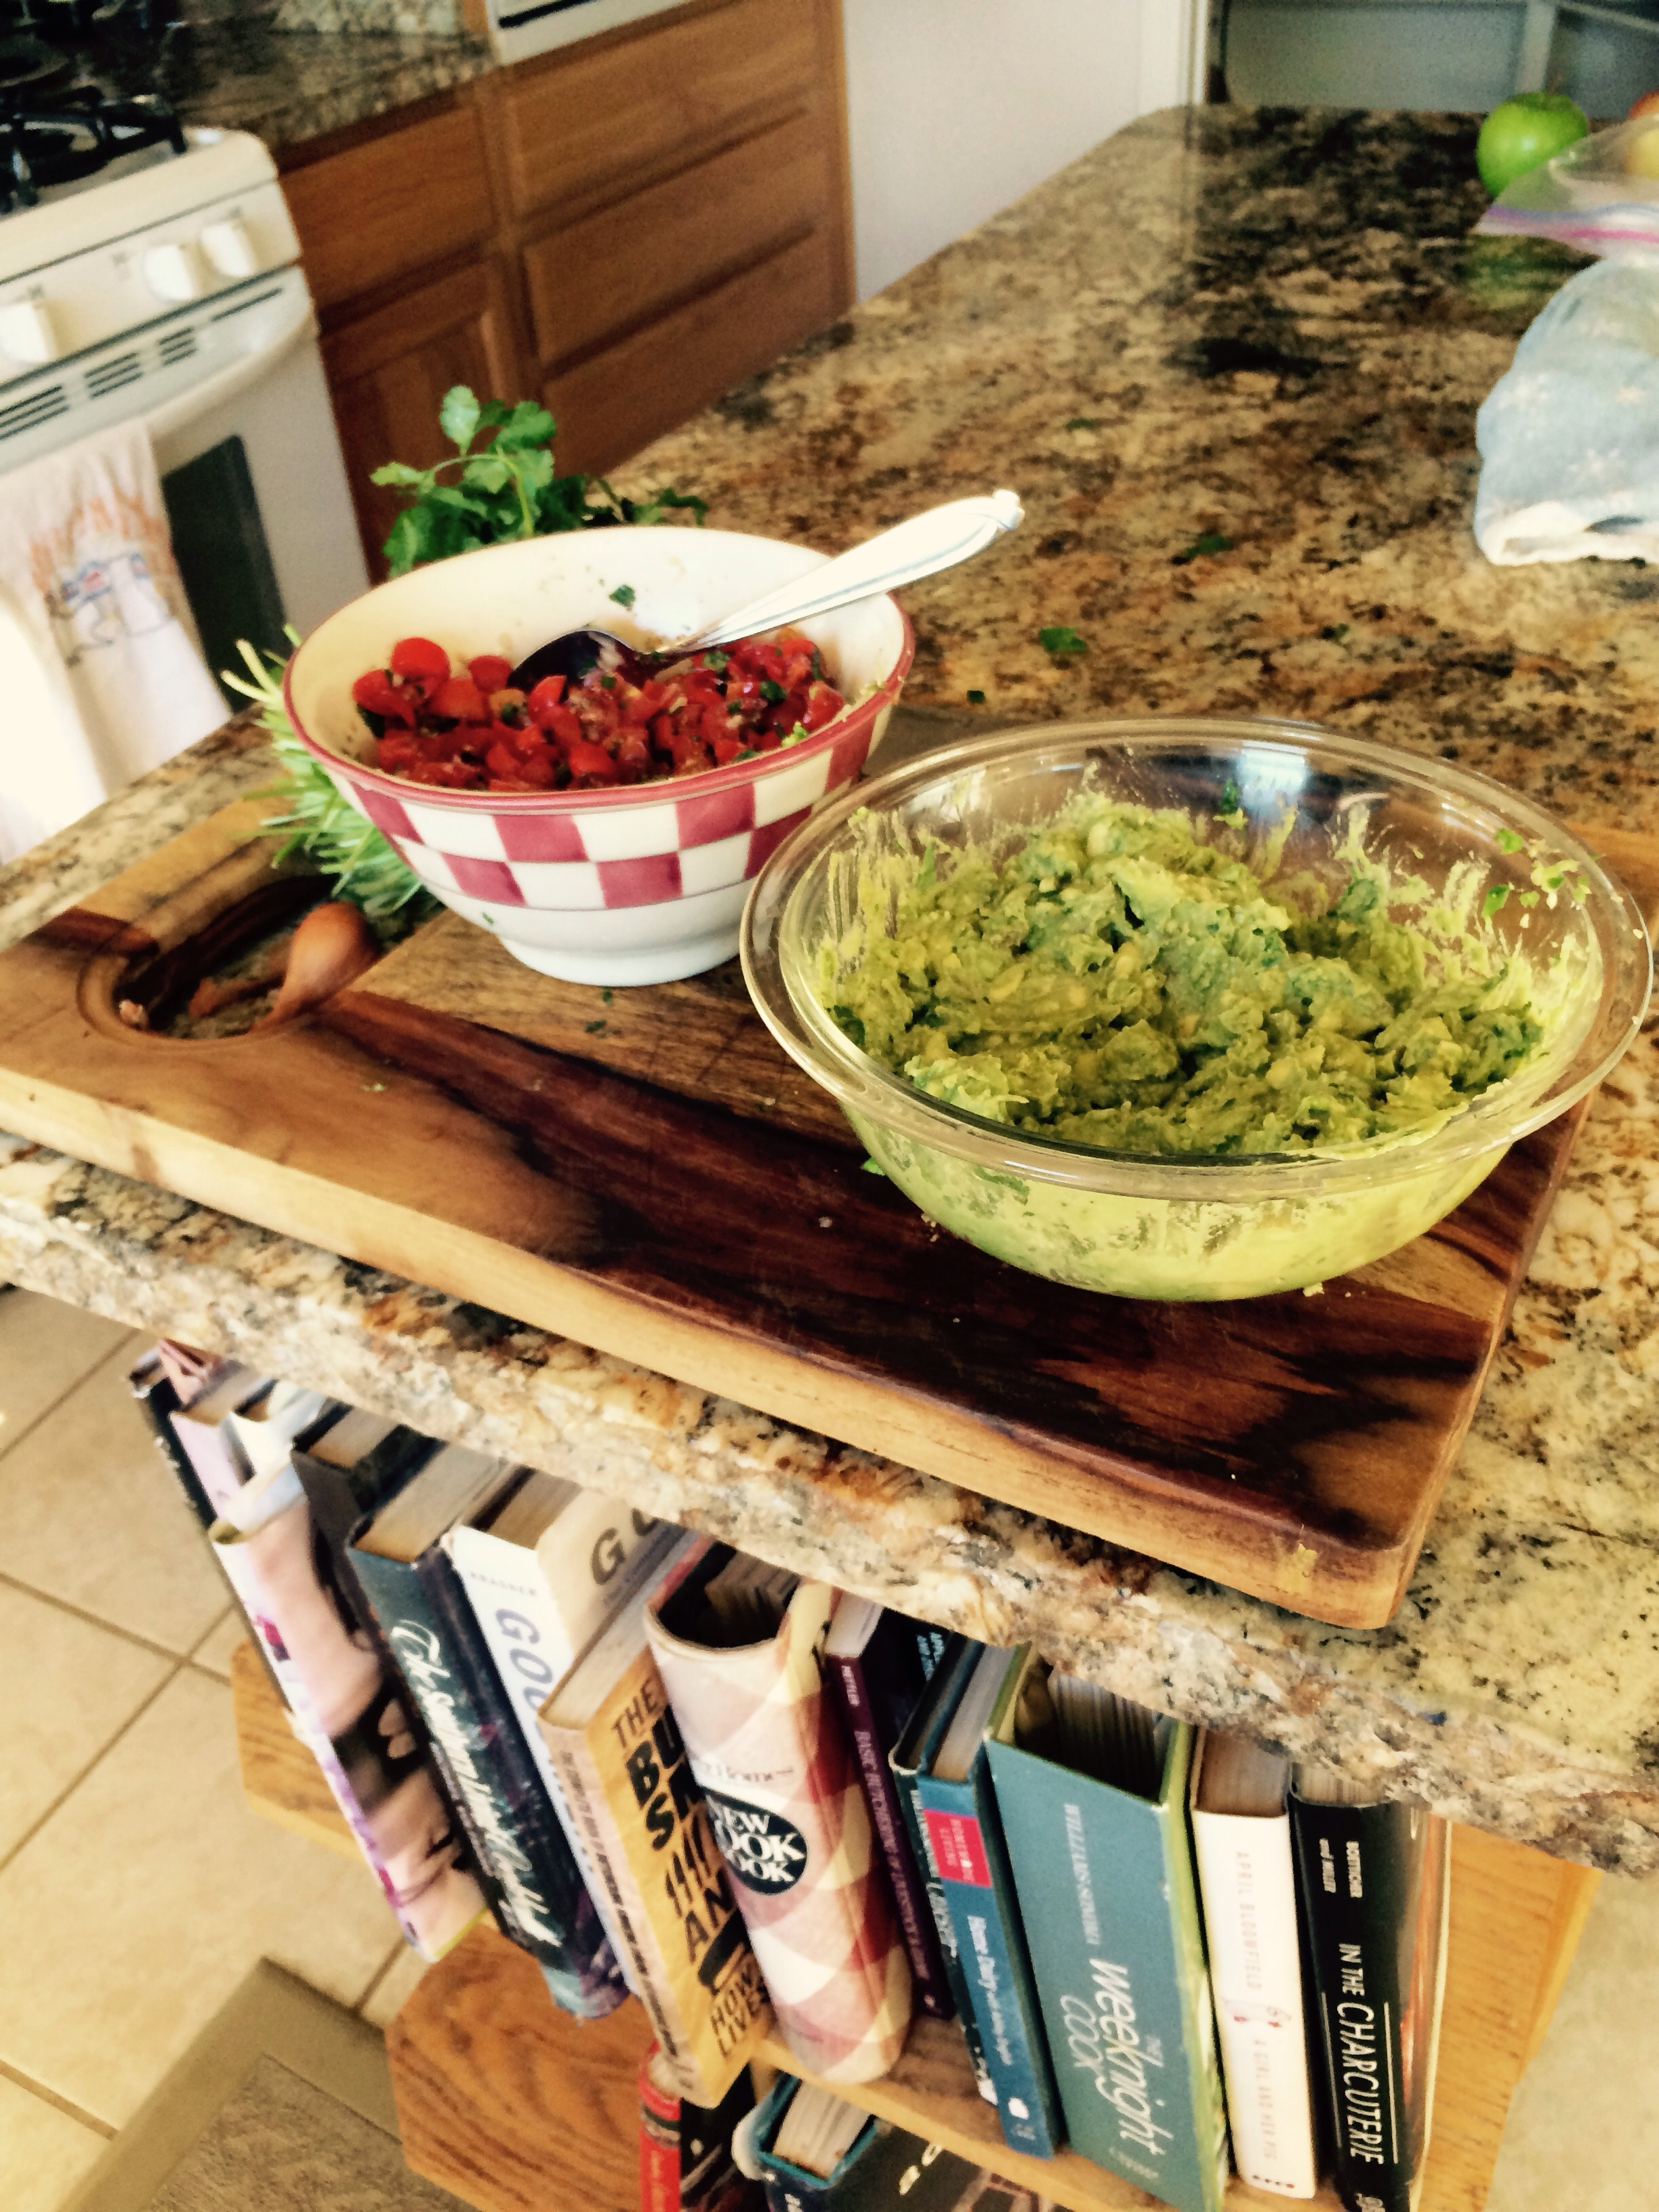 Made fresh salsa and guacamole to compliment the chili verde